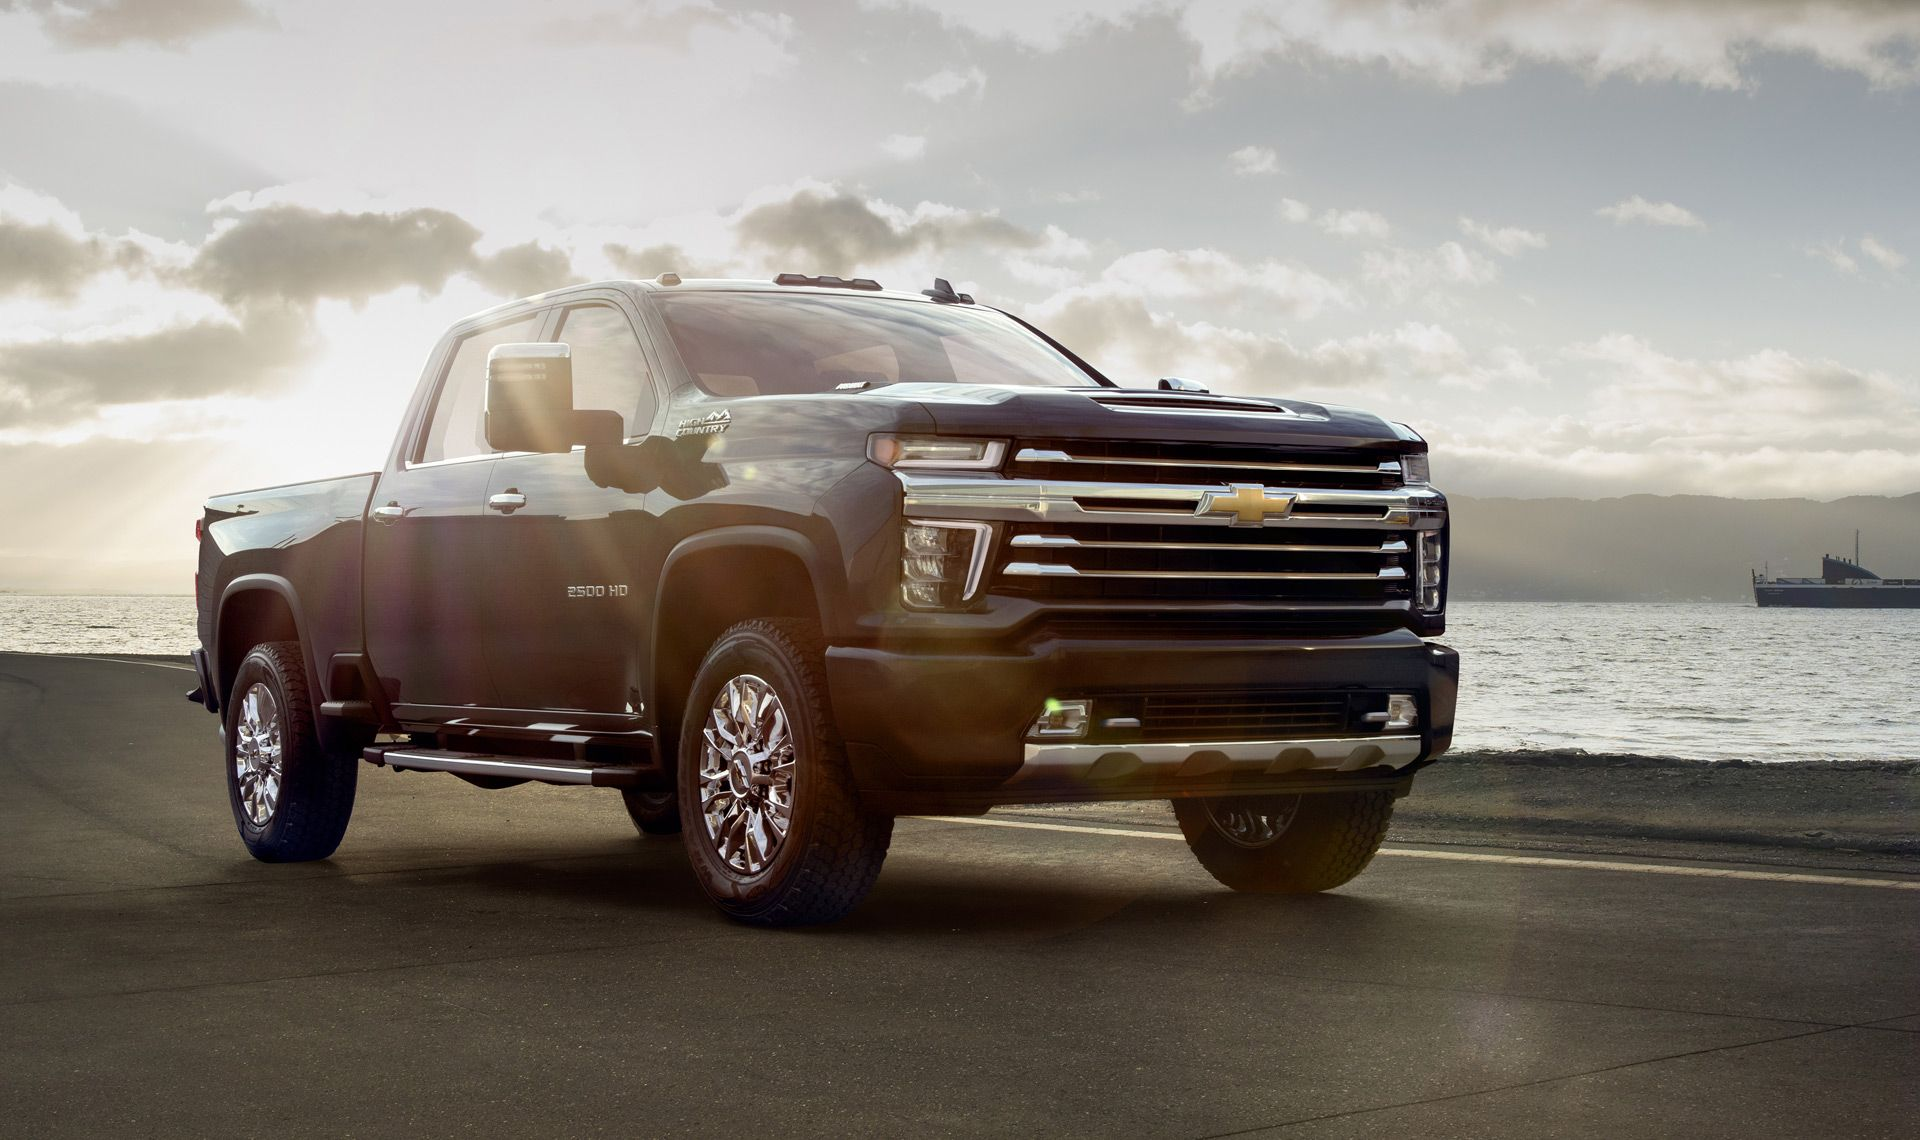 2020 Chevrolet Silverado Hd High Country Revealed Luxury Pickup